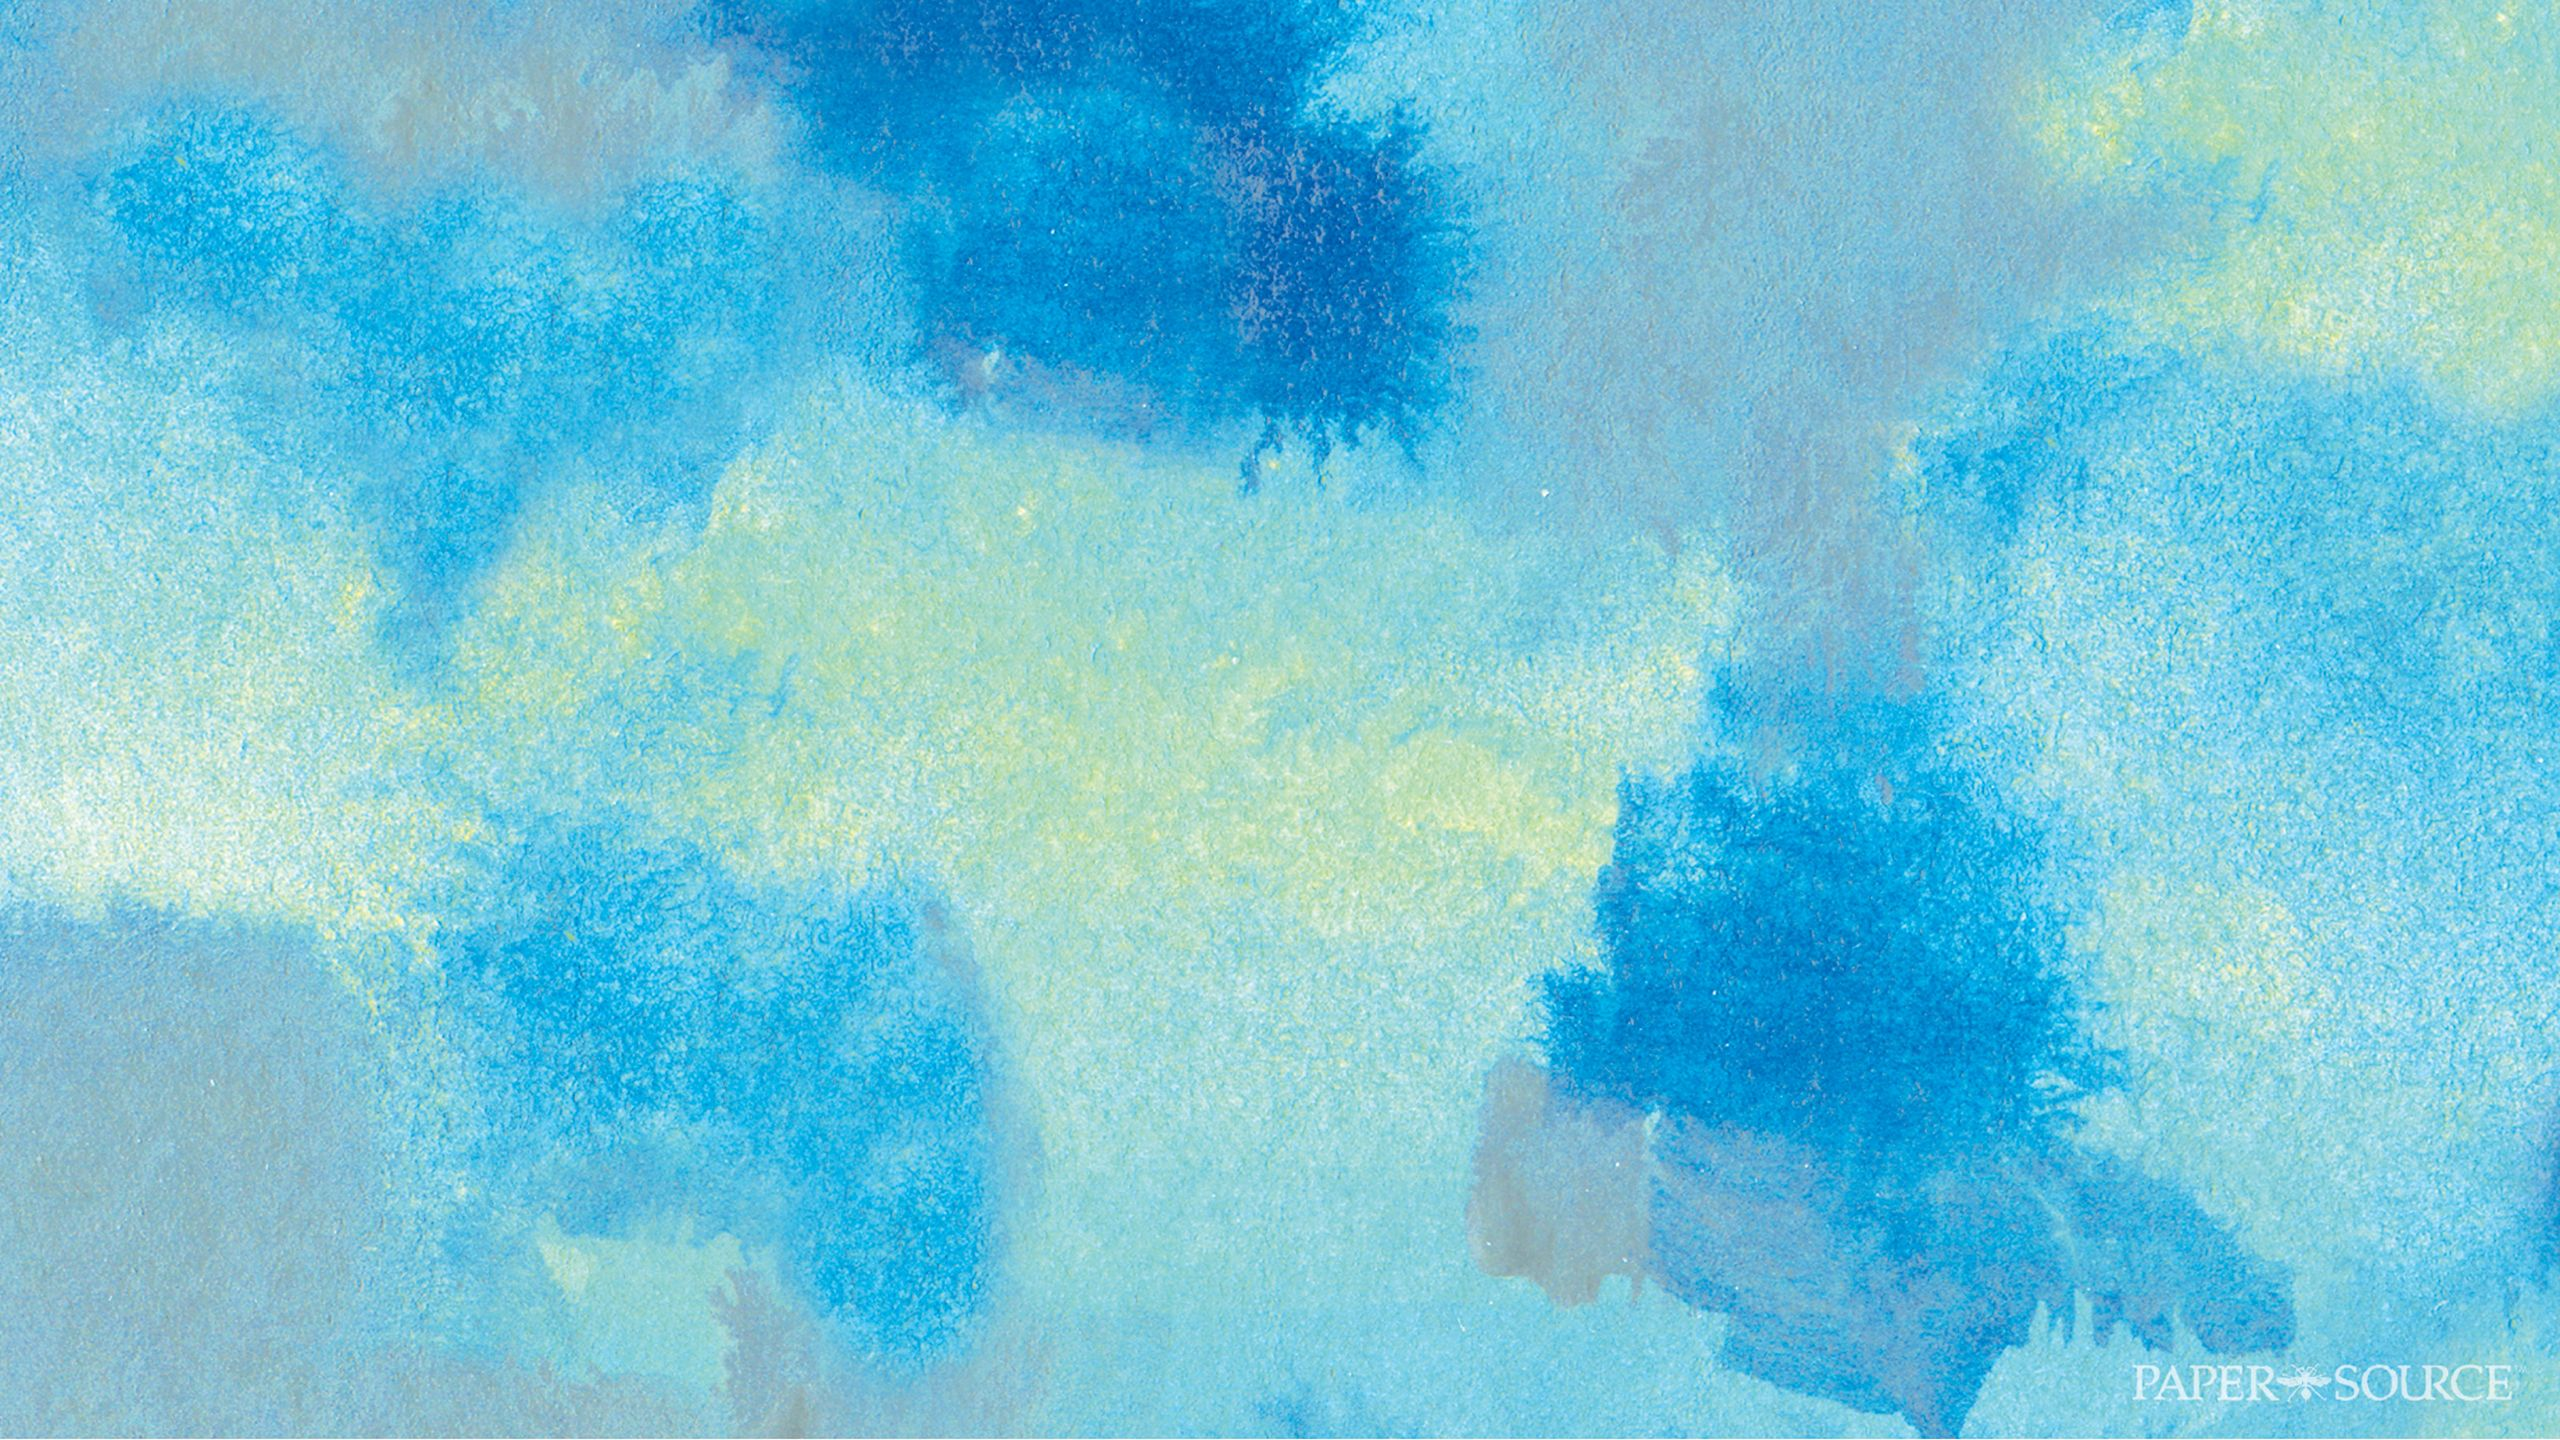 Blue Watercolour Smudge Blot Desktop Wallpaper Background Blue